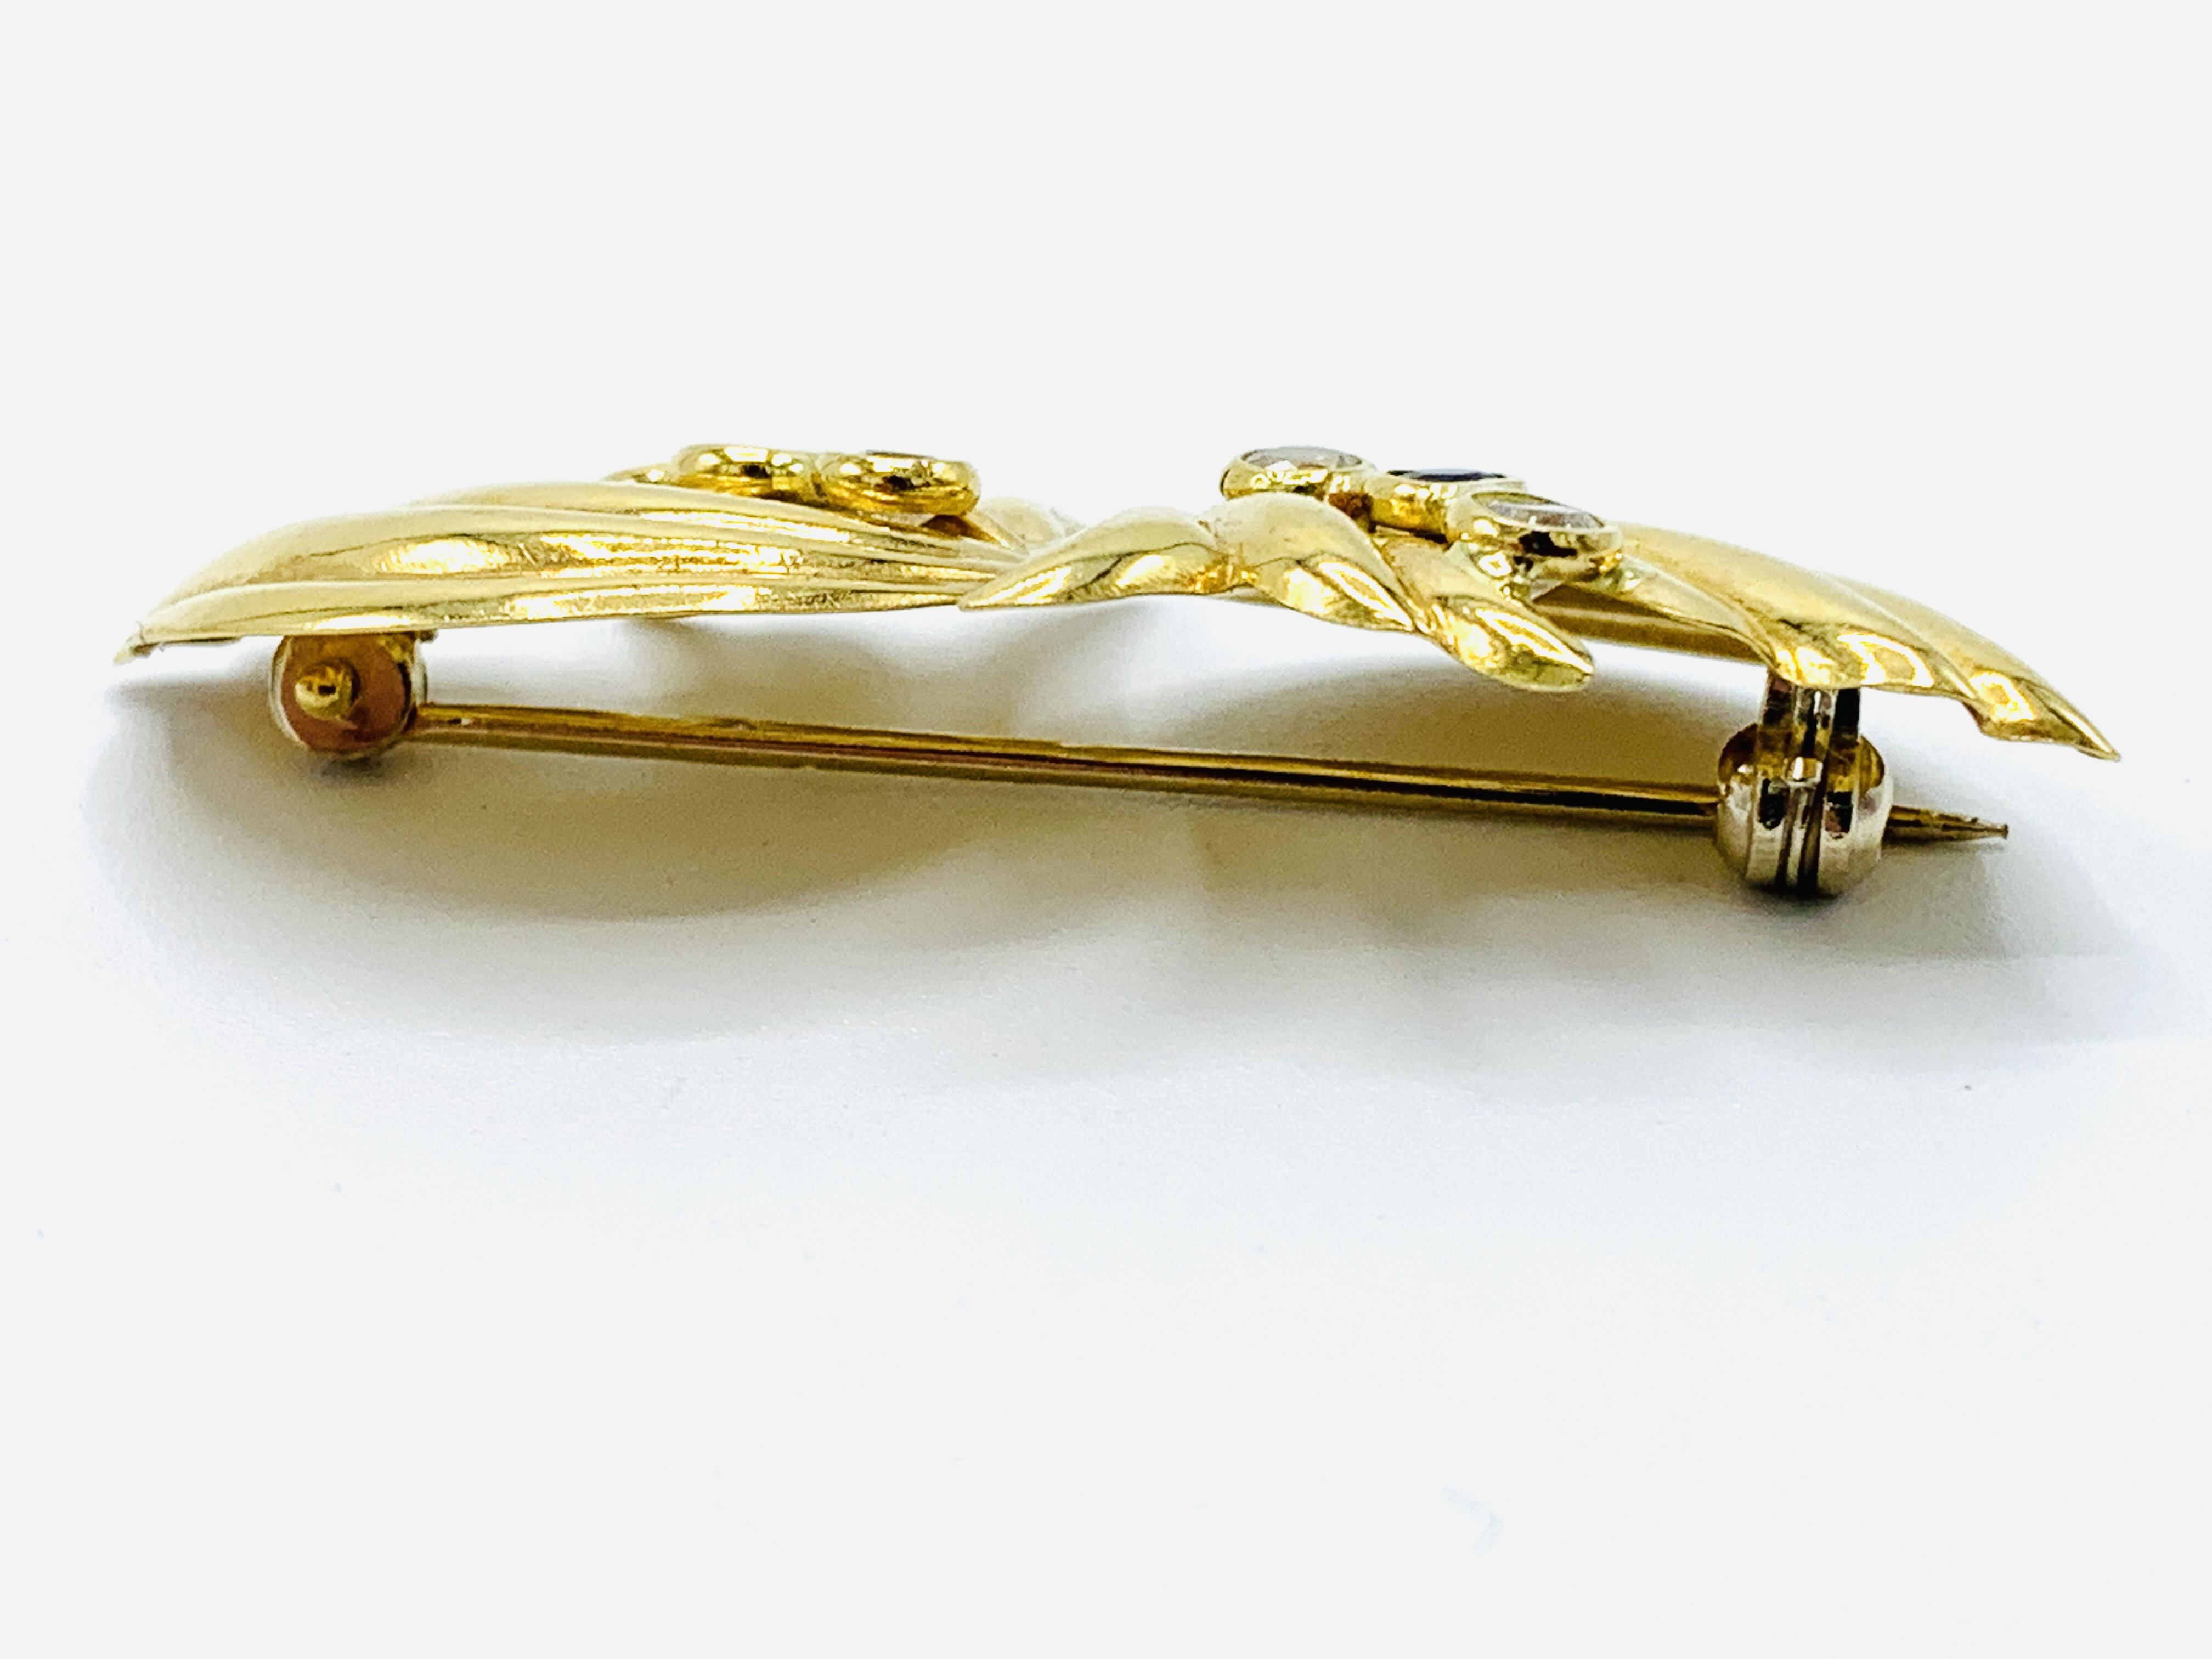 Contemporary Italian bow design 18ct gold brooch - Image 3 of 5